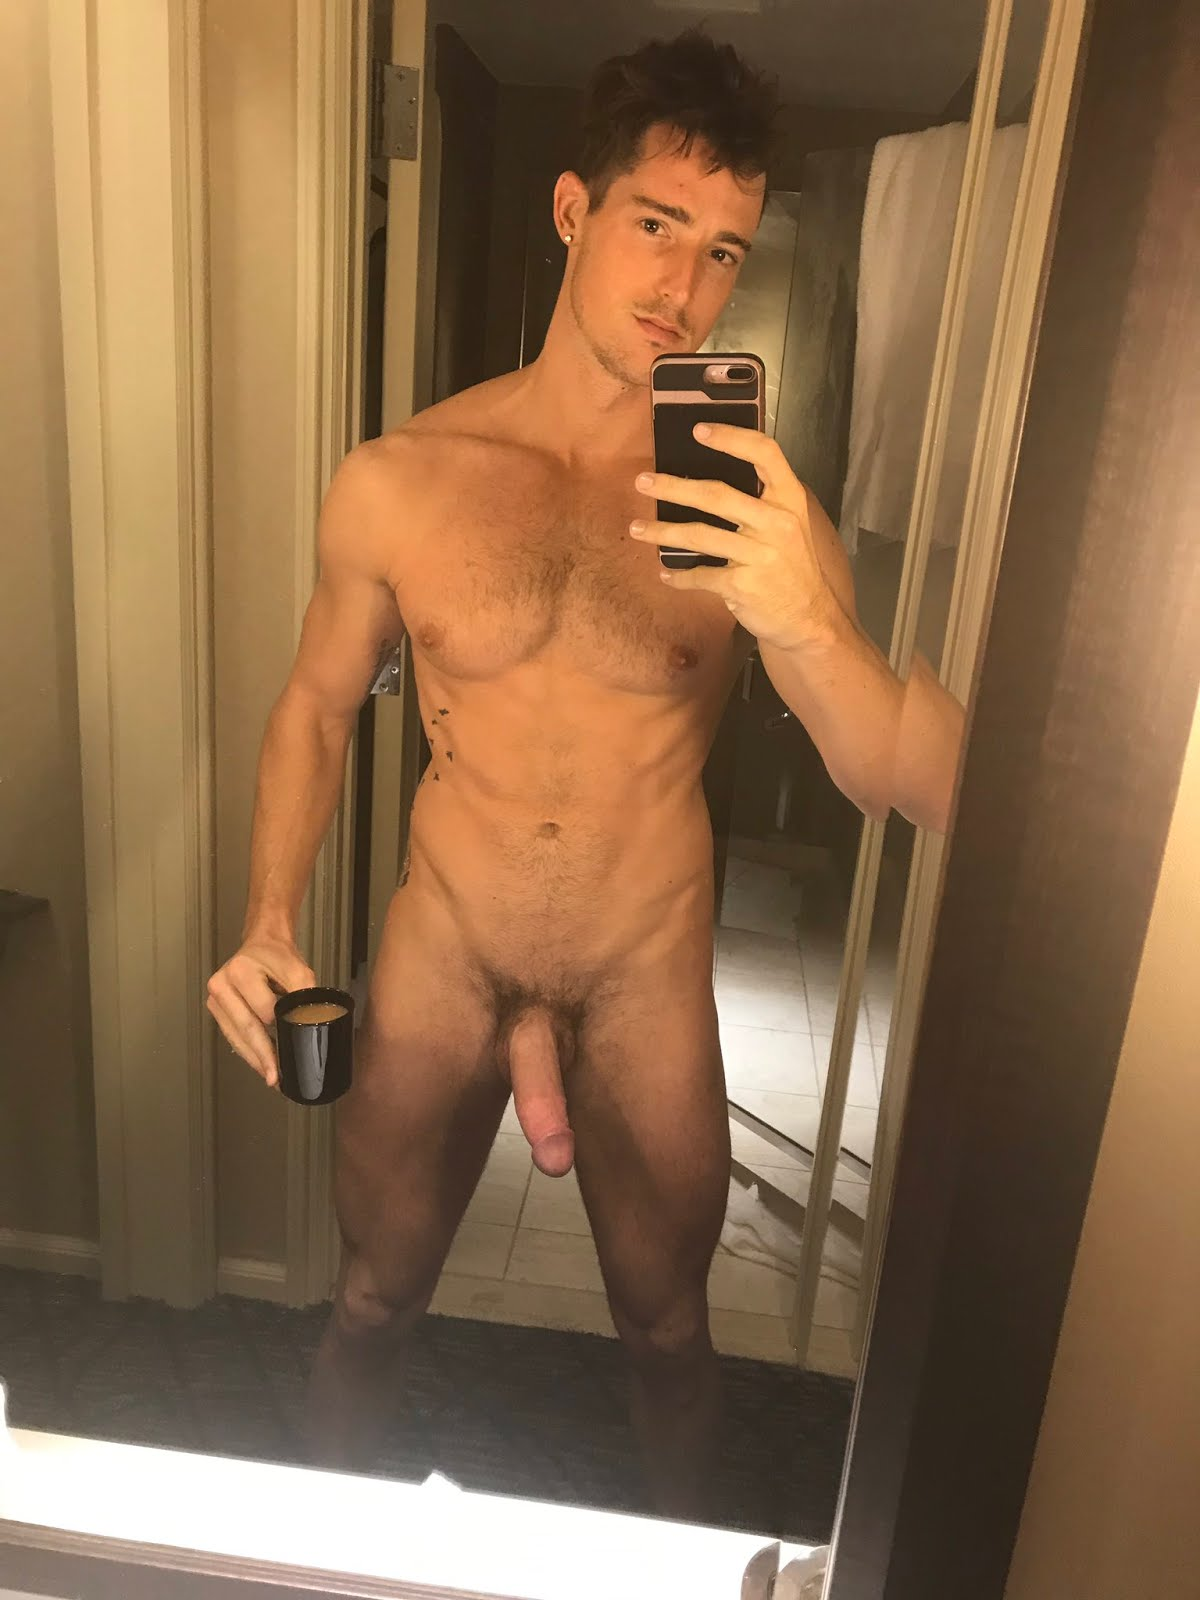 Hot guys naked mirror pictures